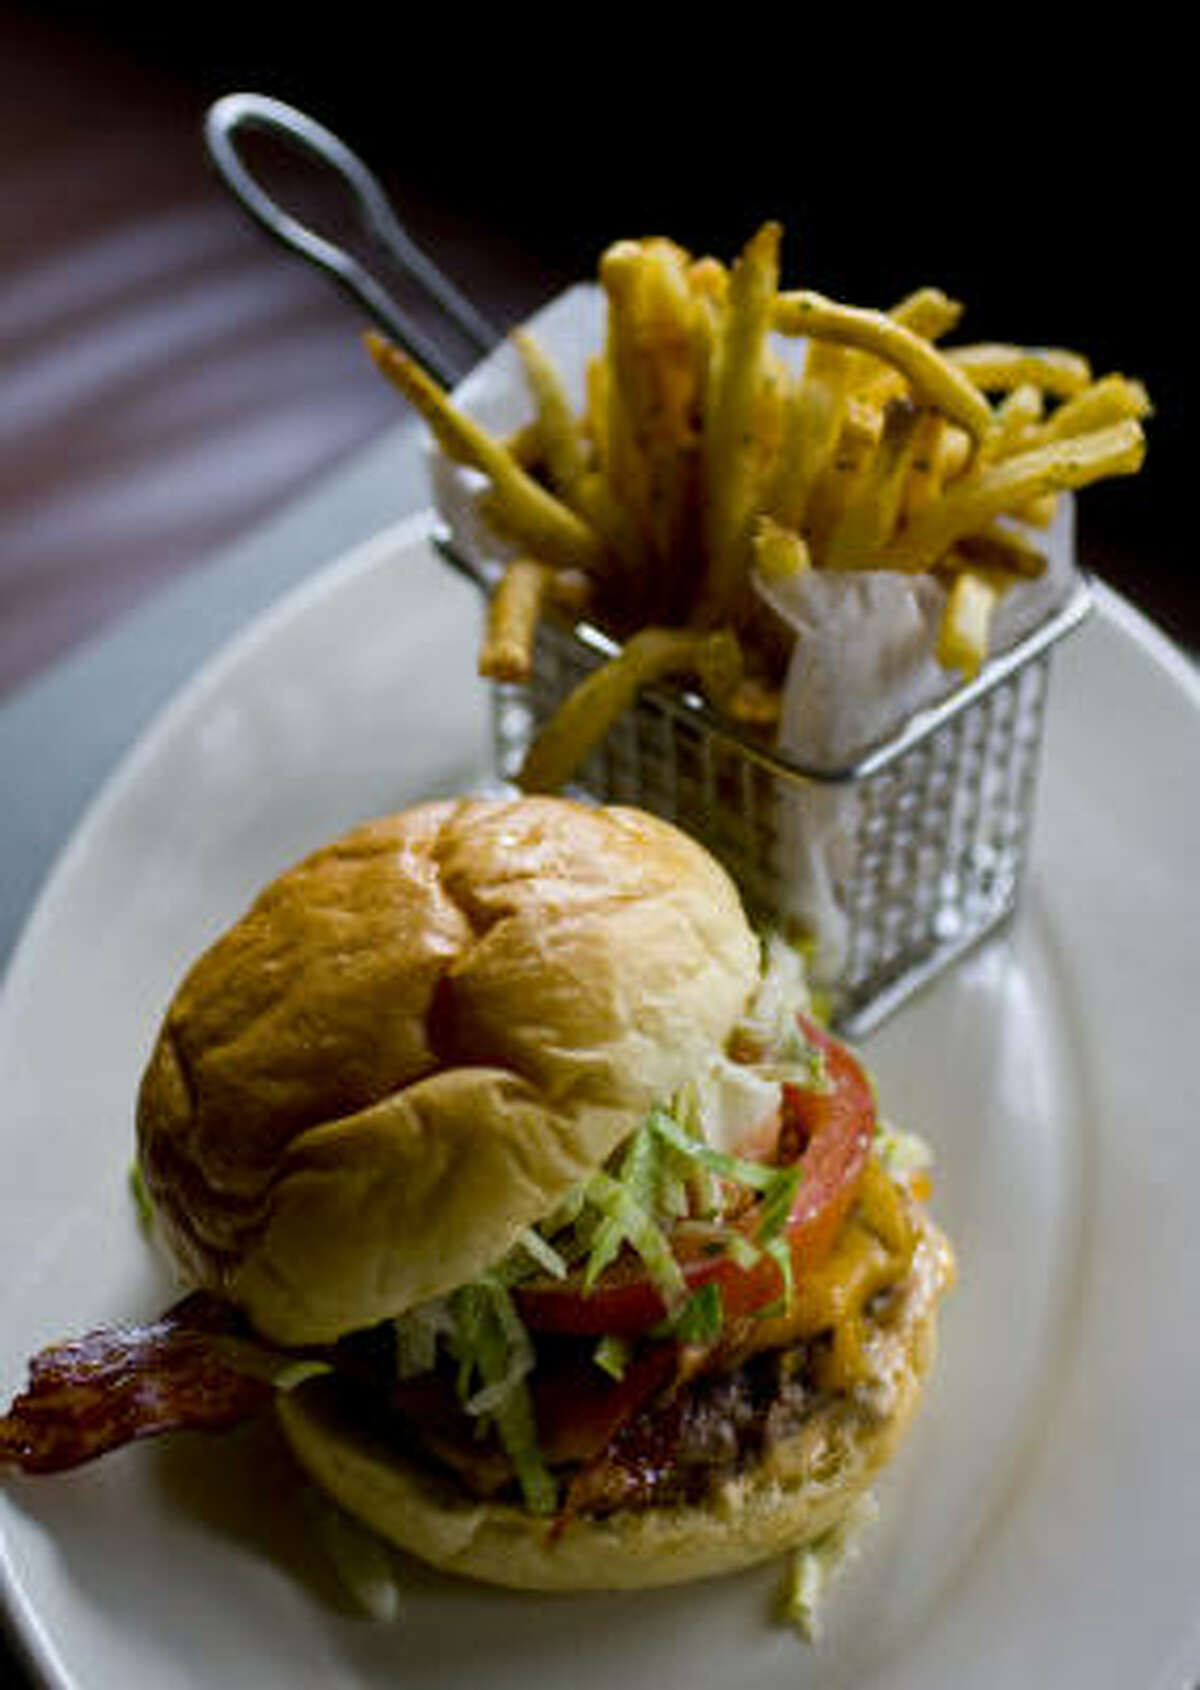 The BRC Pub Burger with french fries